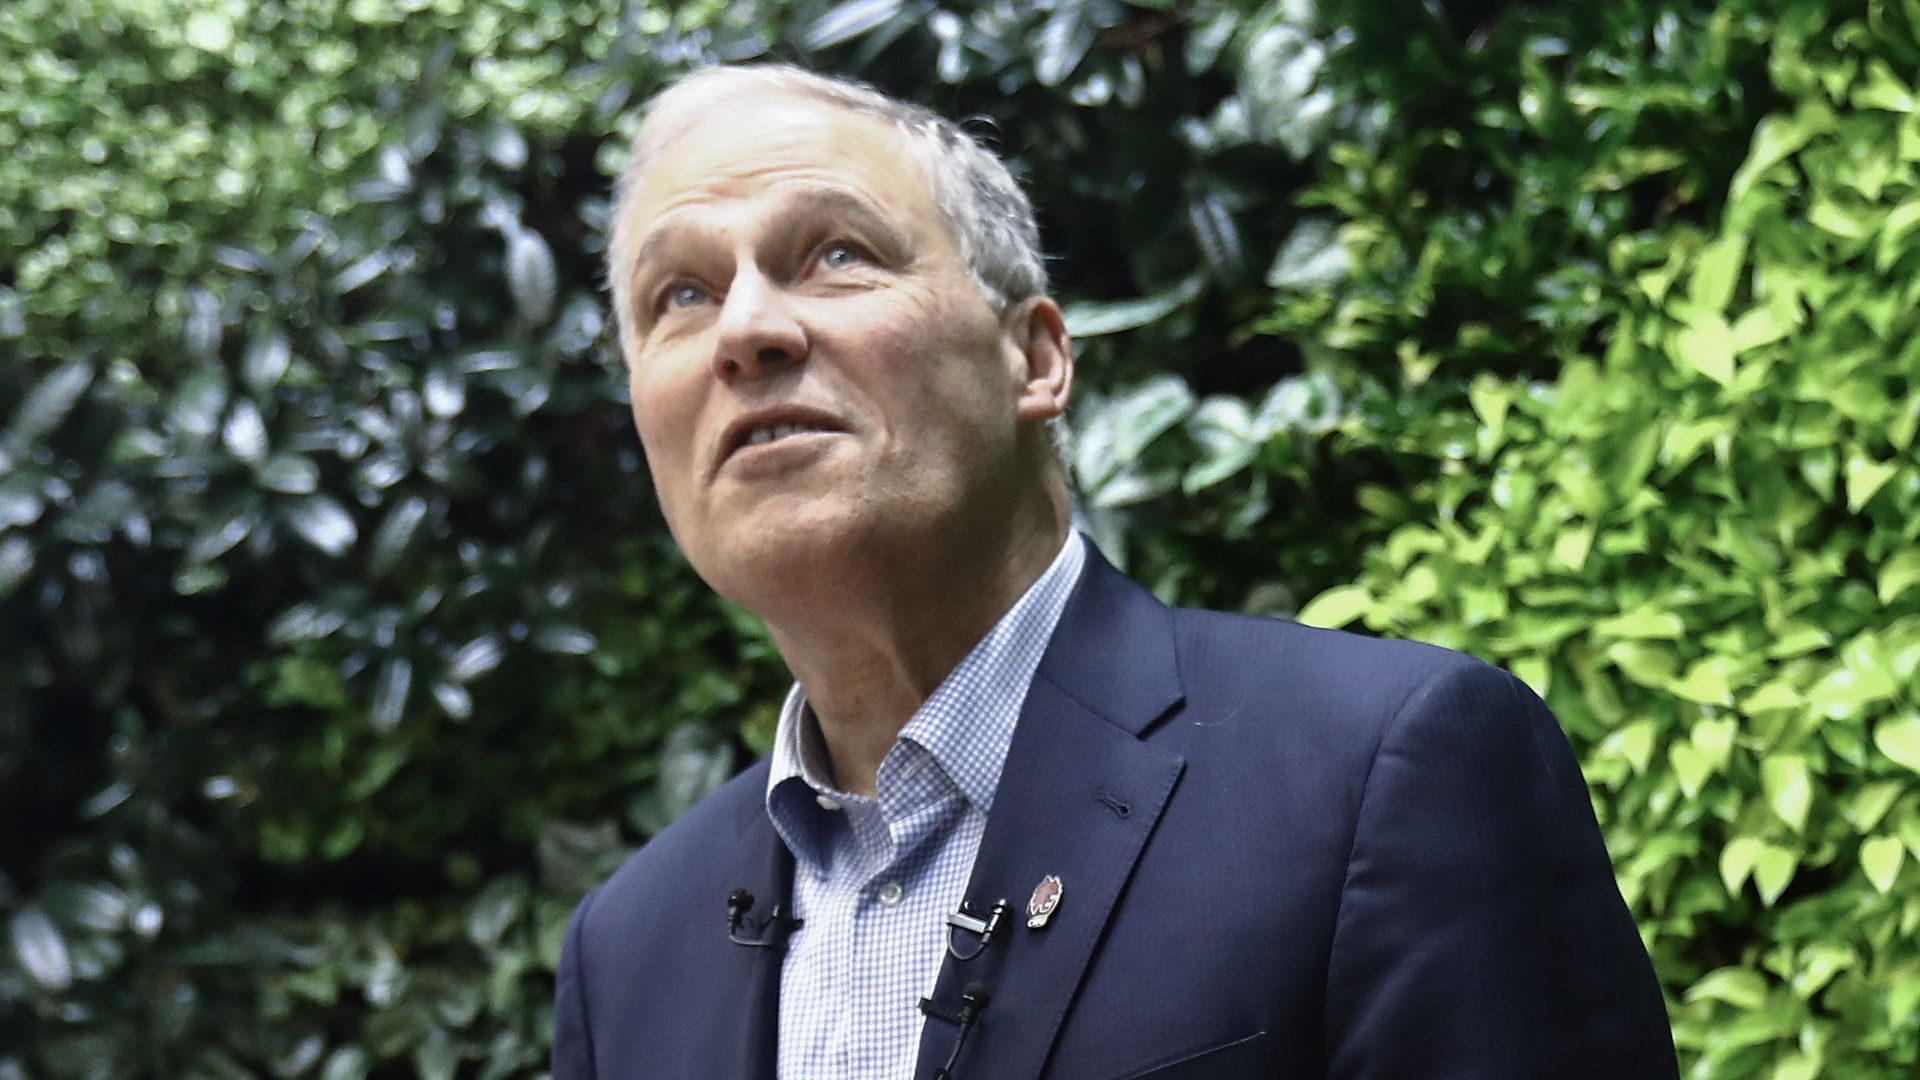 Democratic presidential candidate and Washington Governor Jay Inslee.